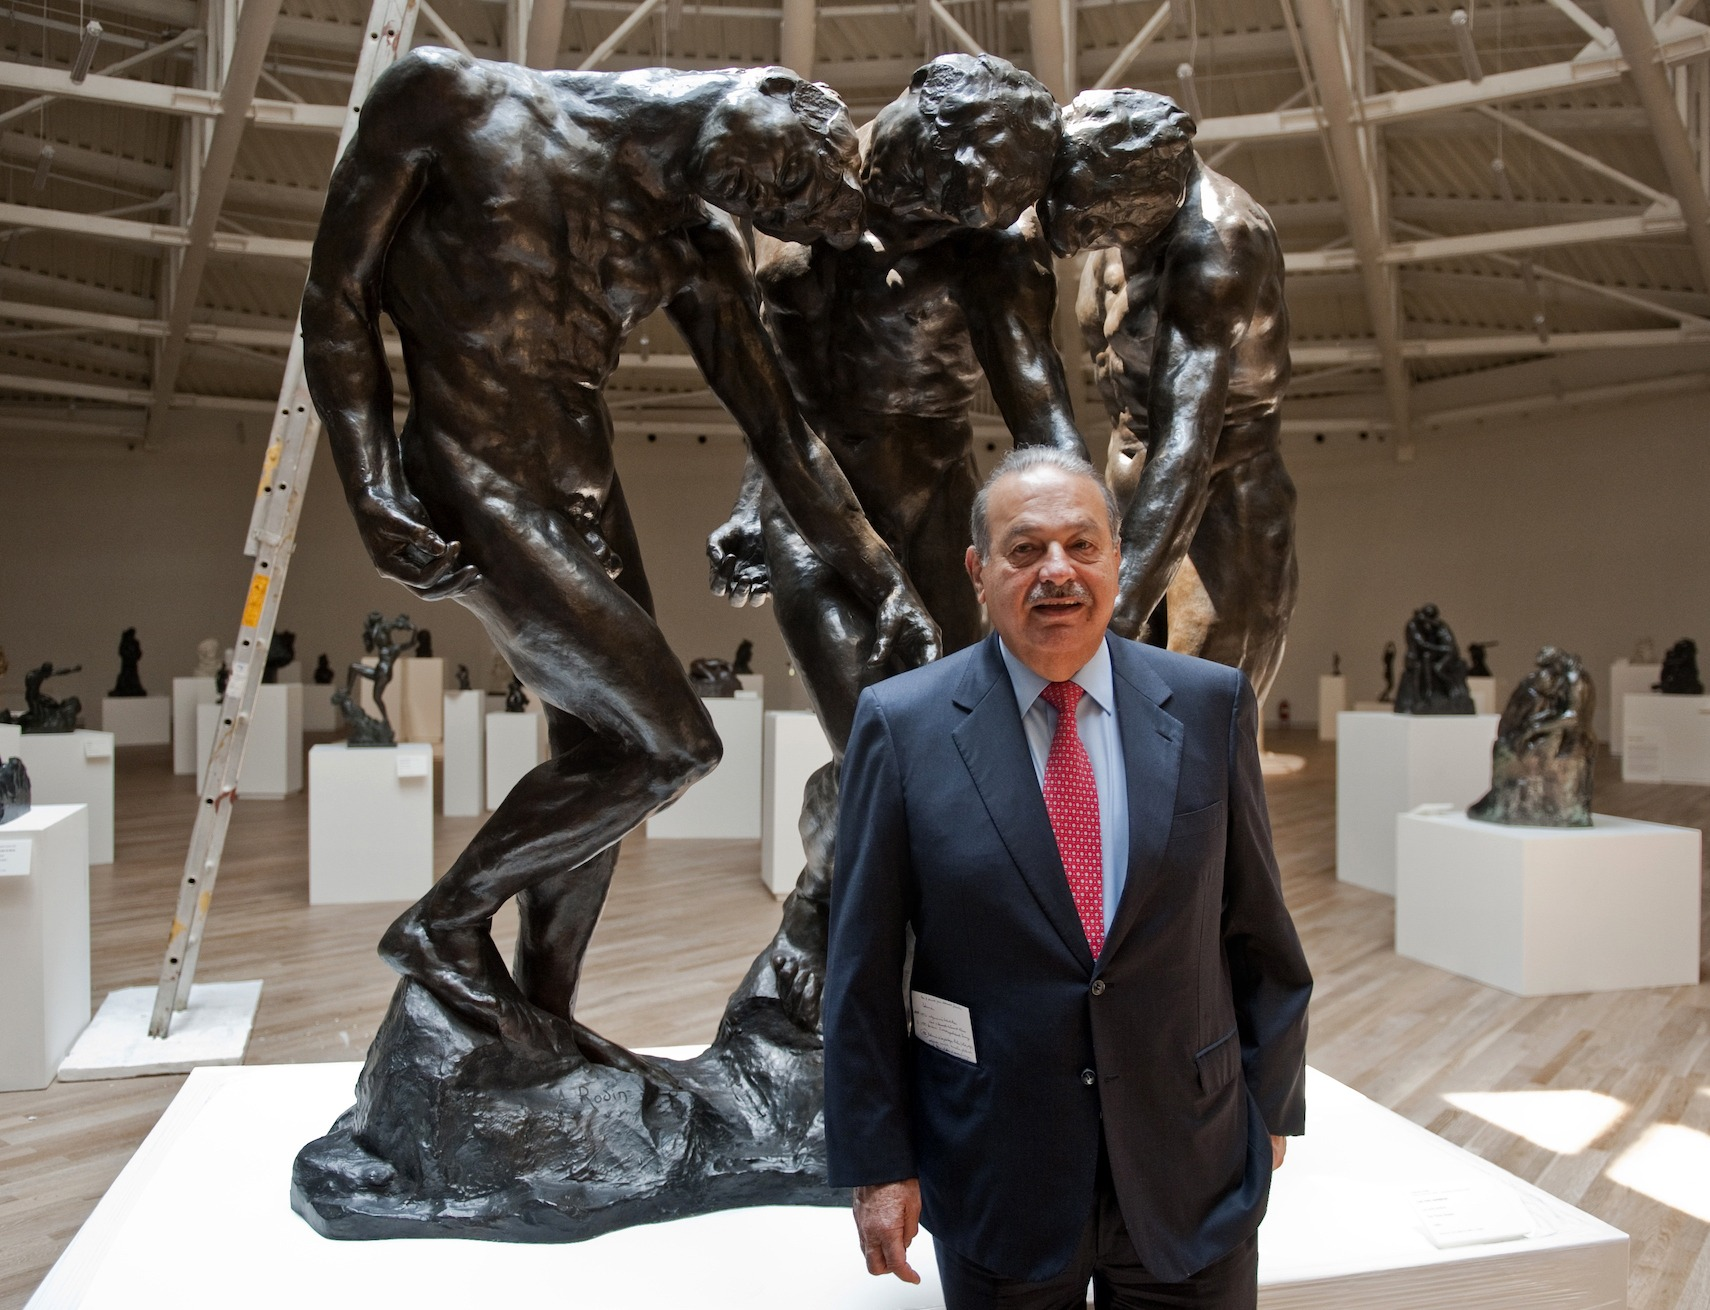 Mexican tycoon Carlos Slim poses next to a statue